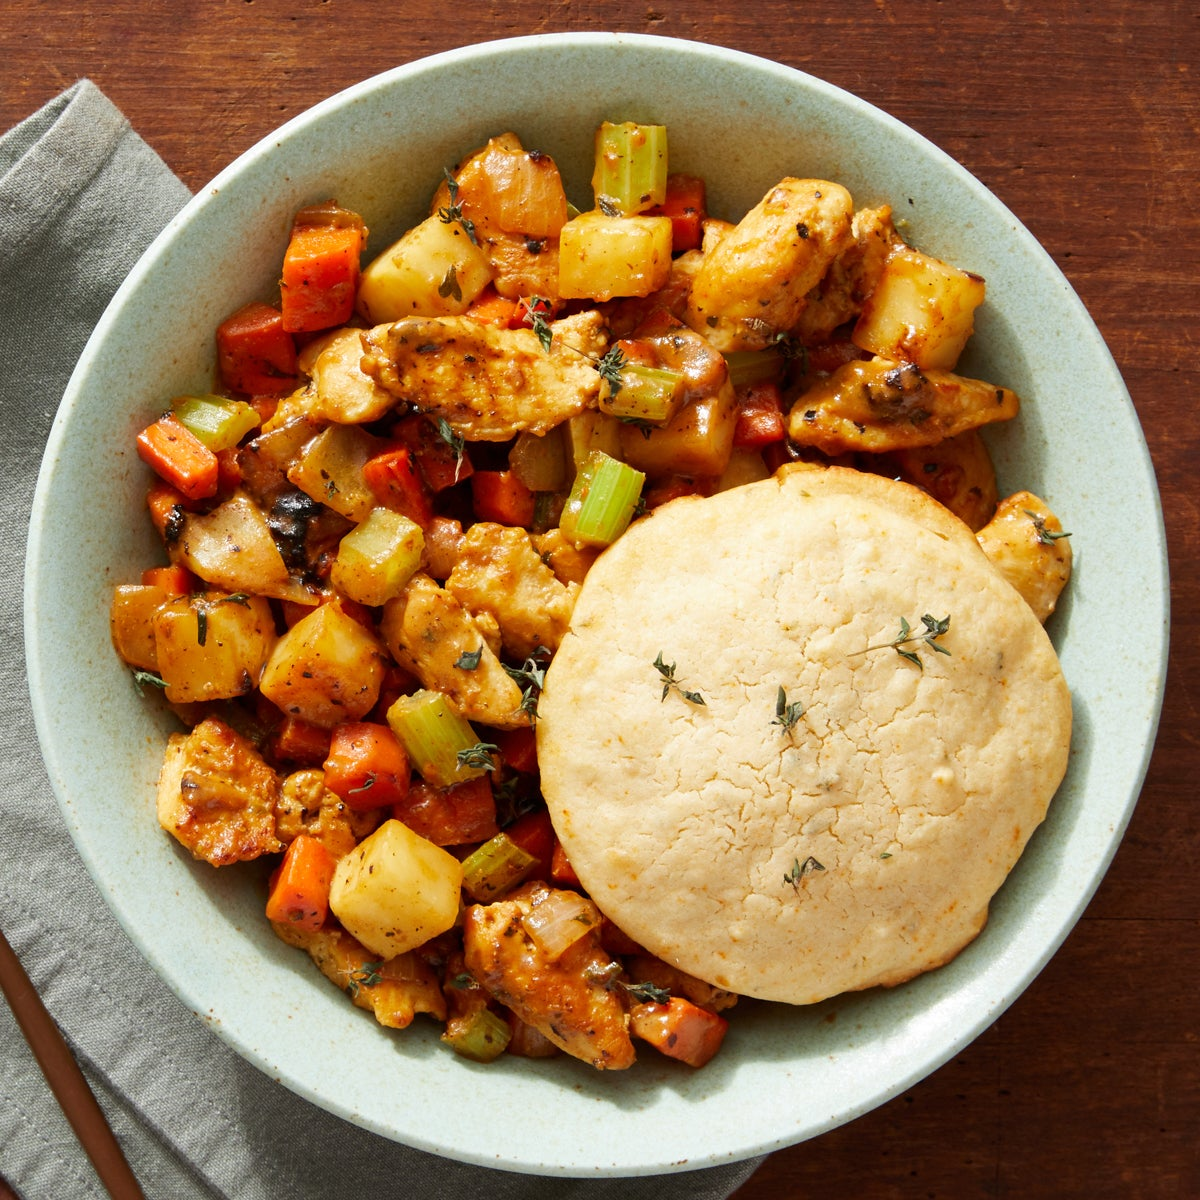 Country-Style Chicken & Biscuits with Carrots, Celery, & Turnip